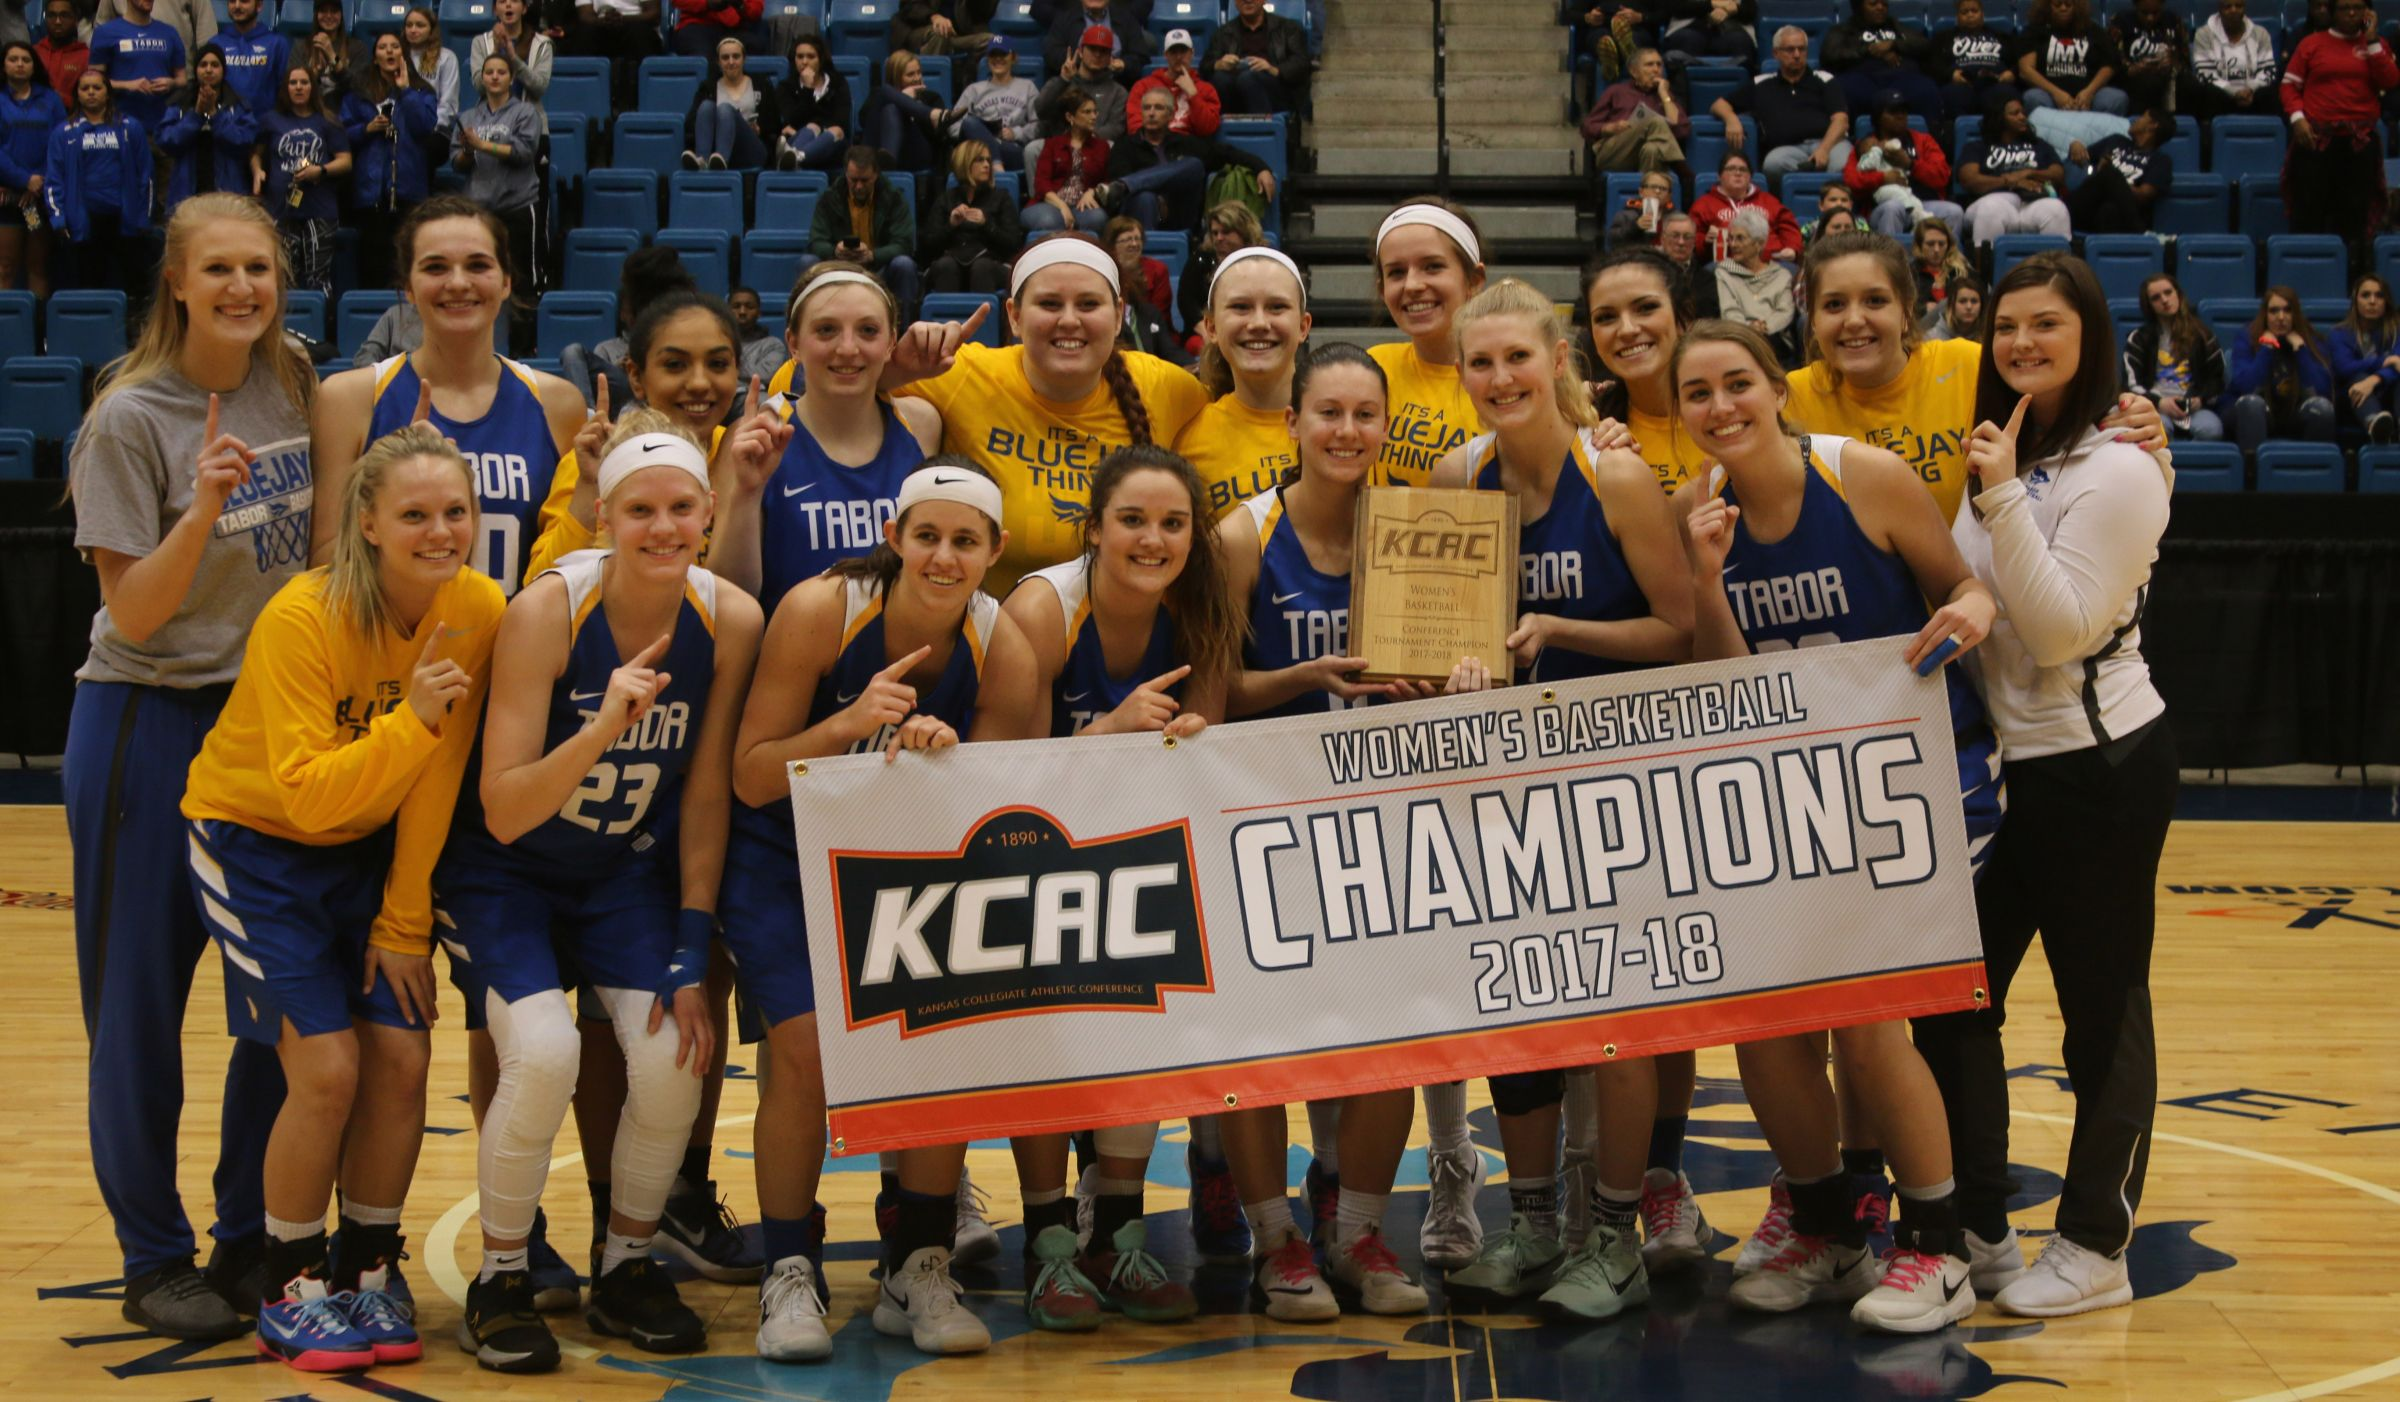 2017-18 KCAC Championships | Kansas Collegiate Athletic Conference